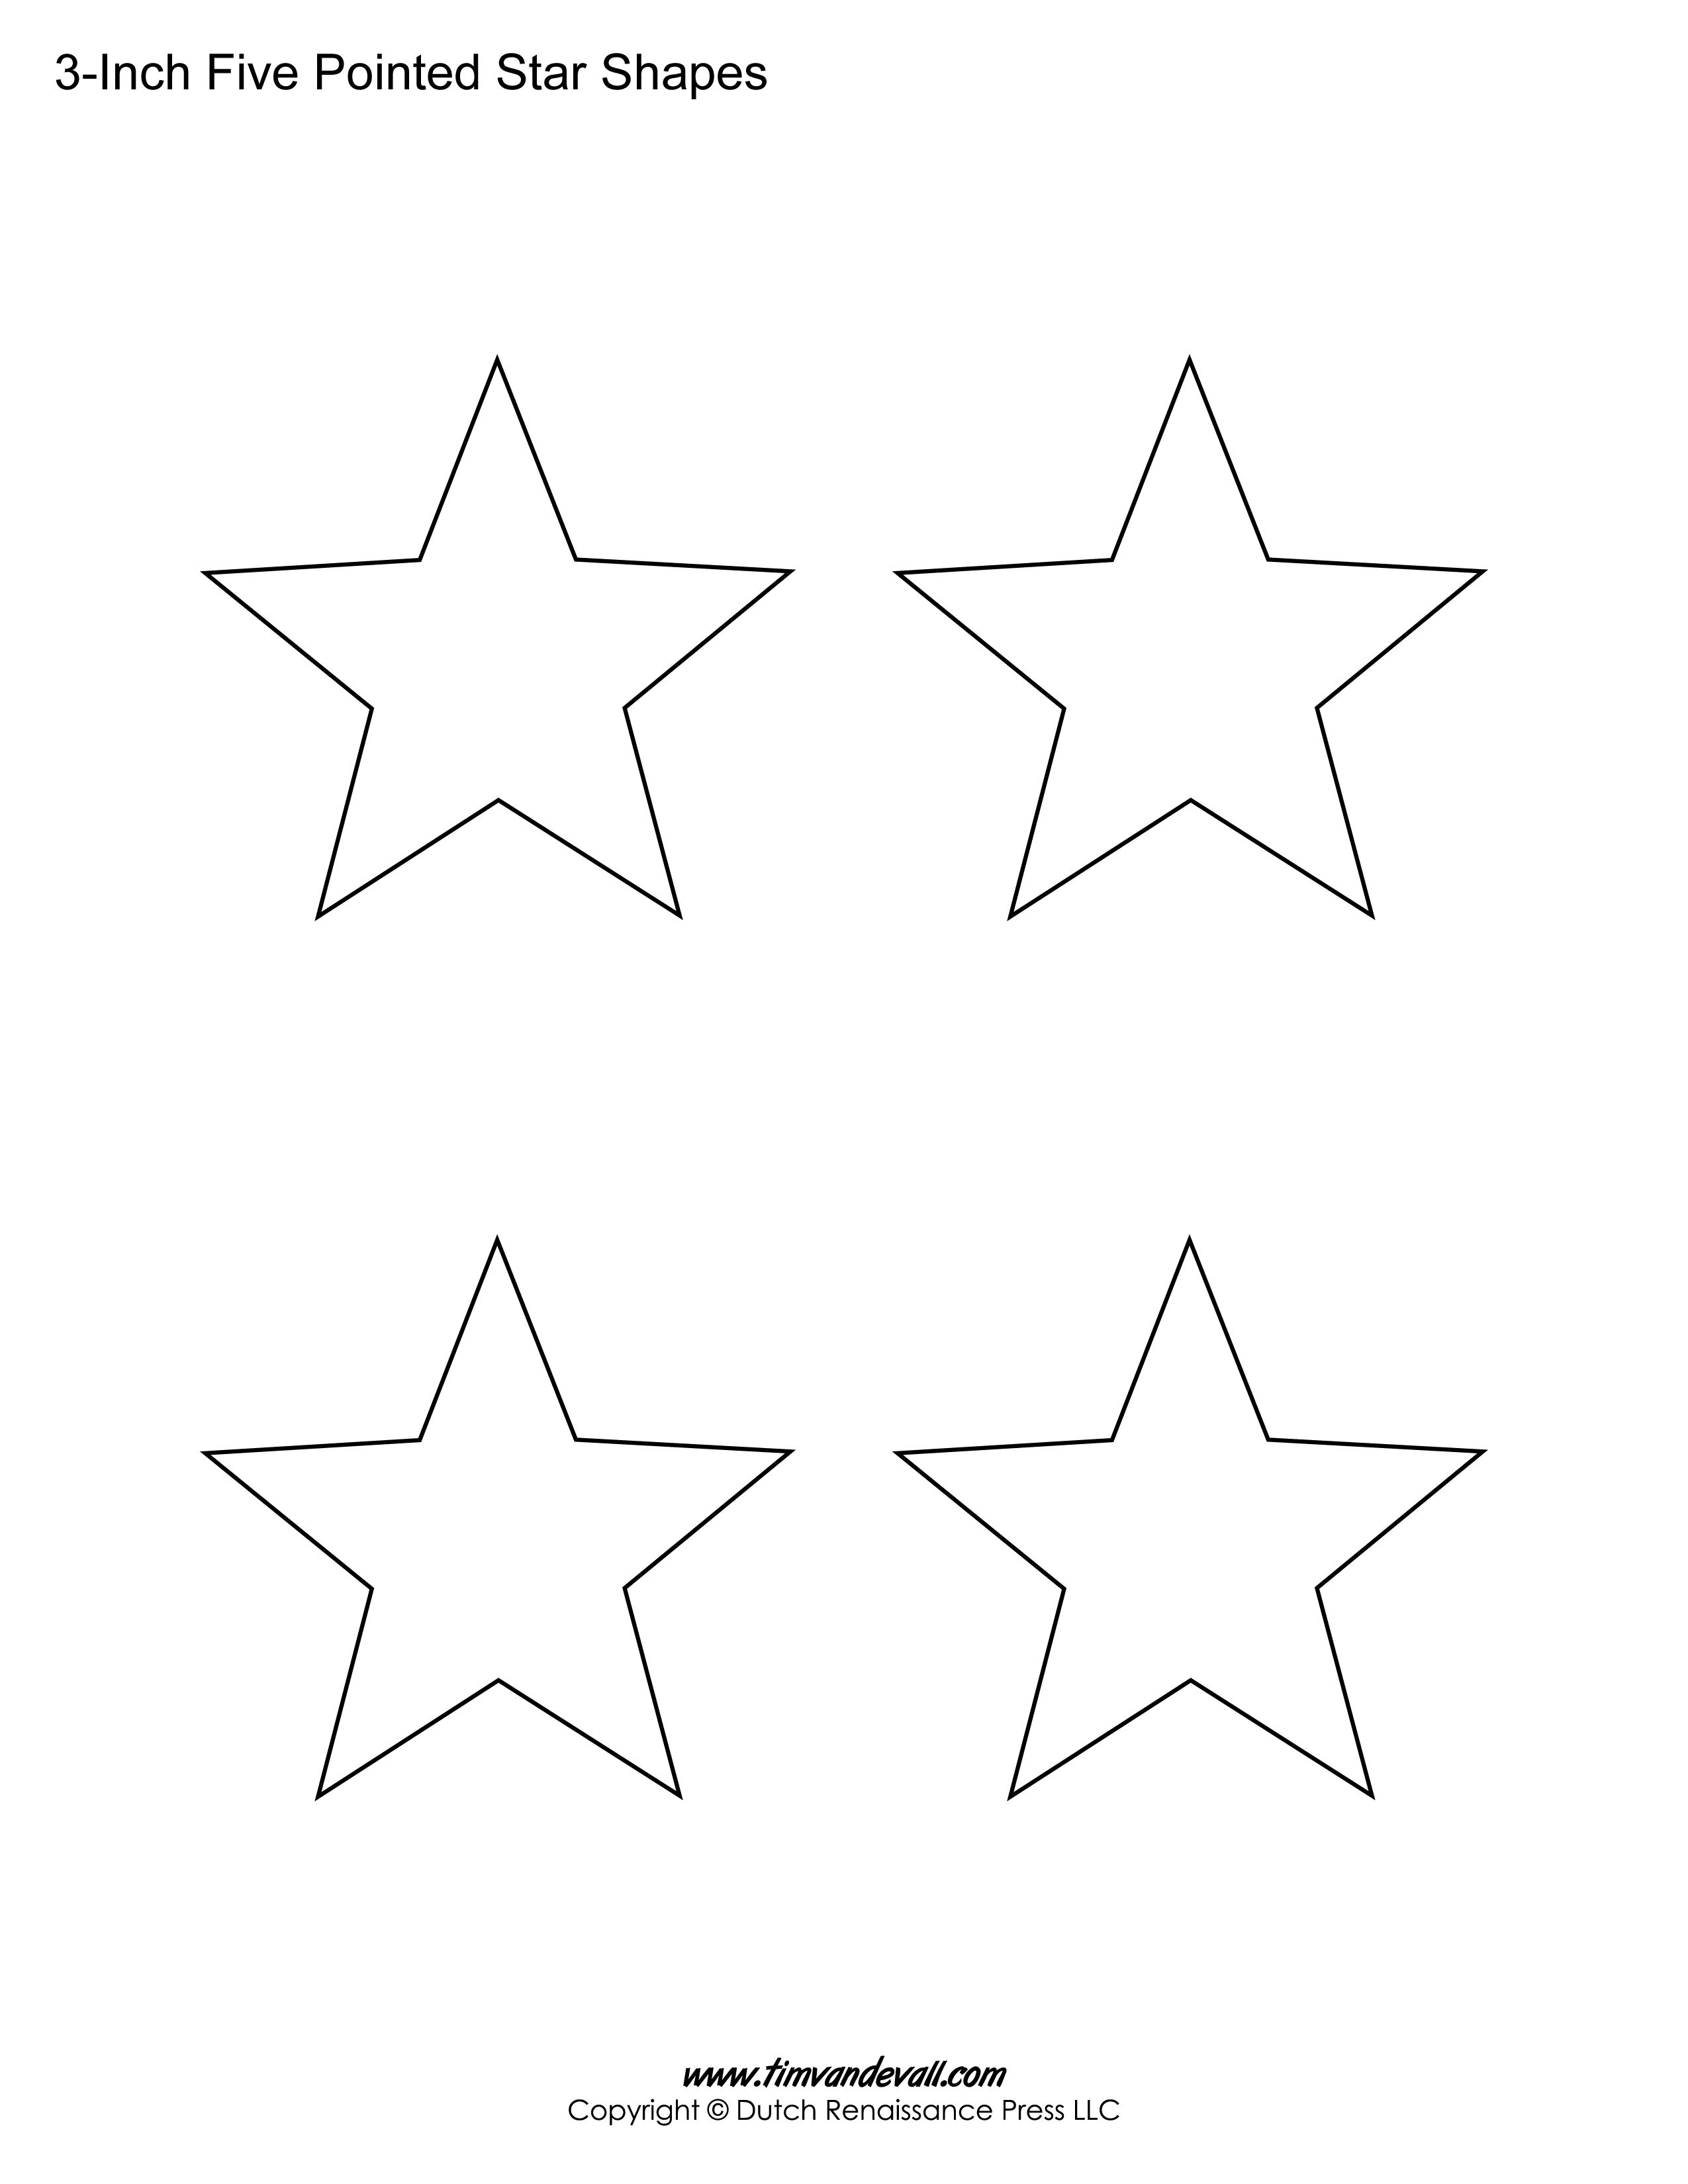 Printable Five Pointed Star Templates Star Template